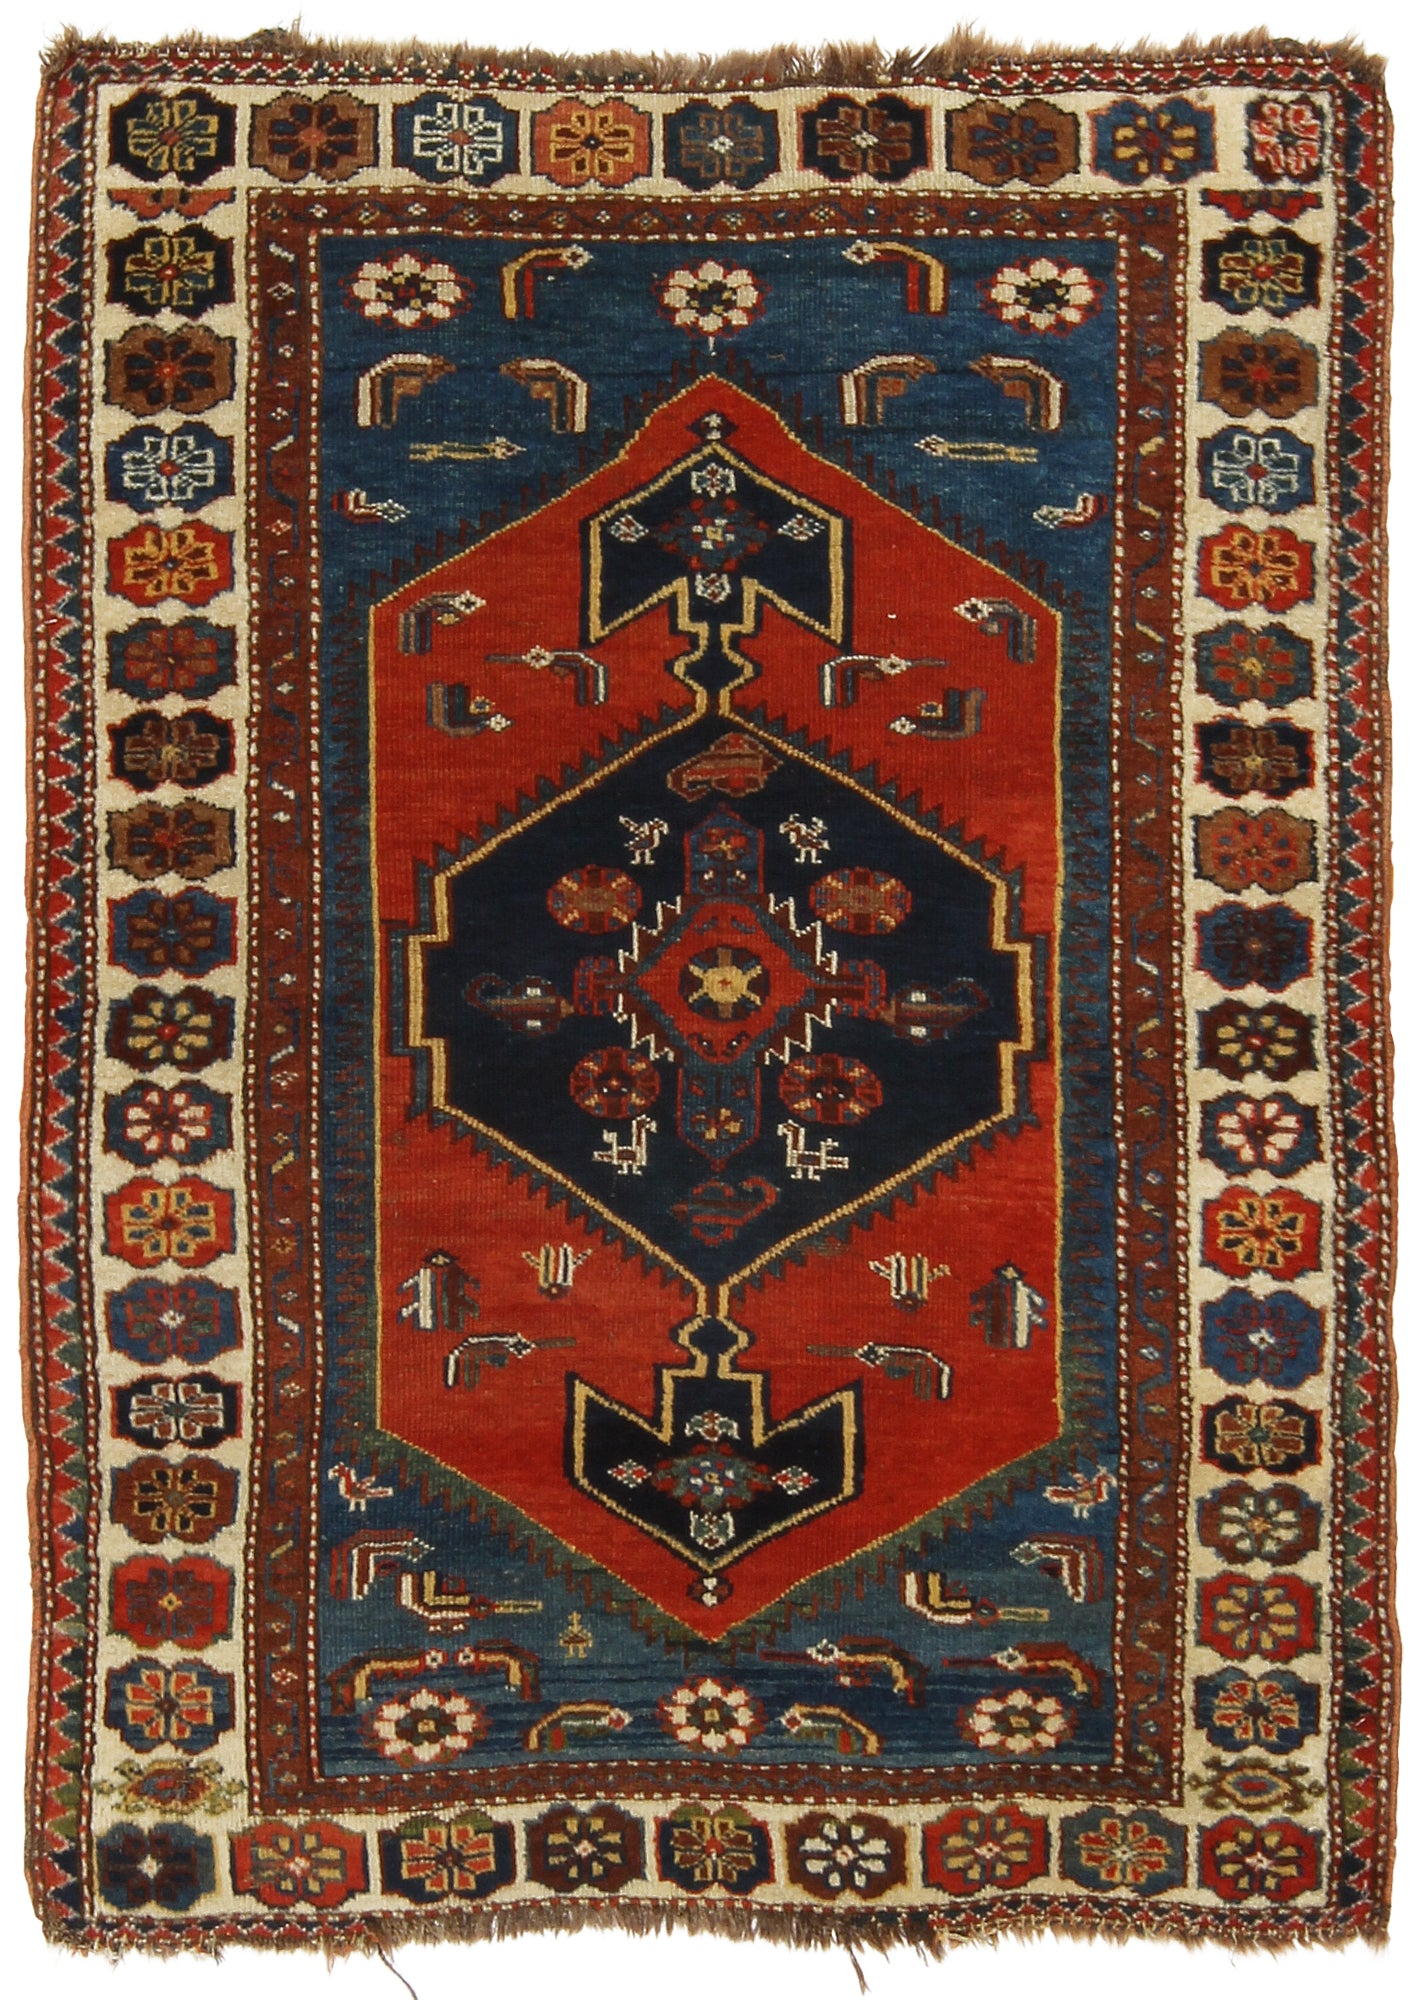 Antique Caucasus Rug-Turco Persian Rug Company Inc.